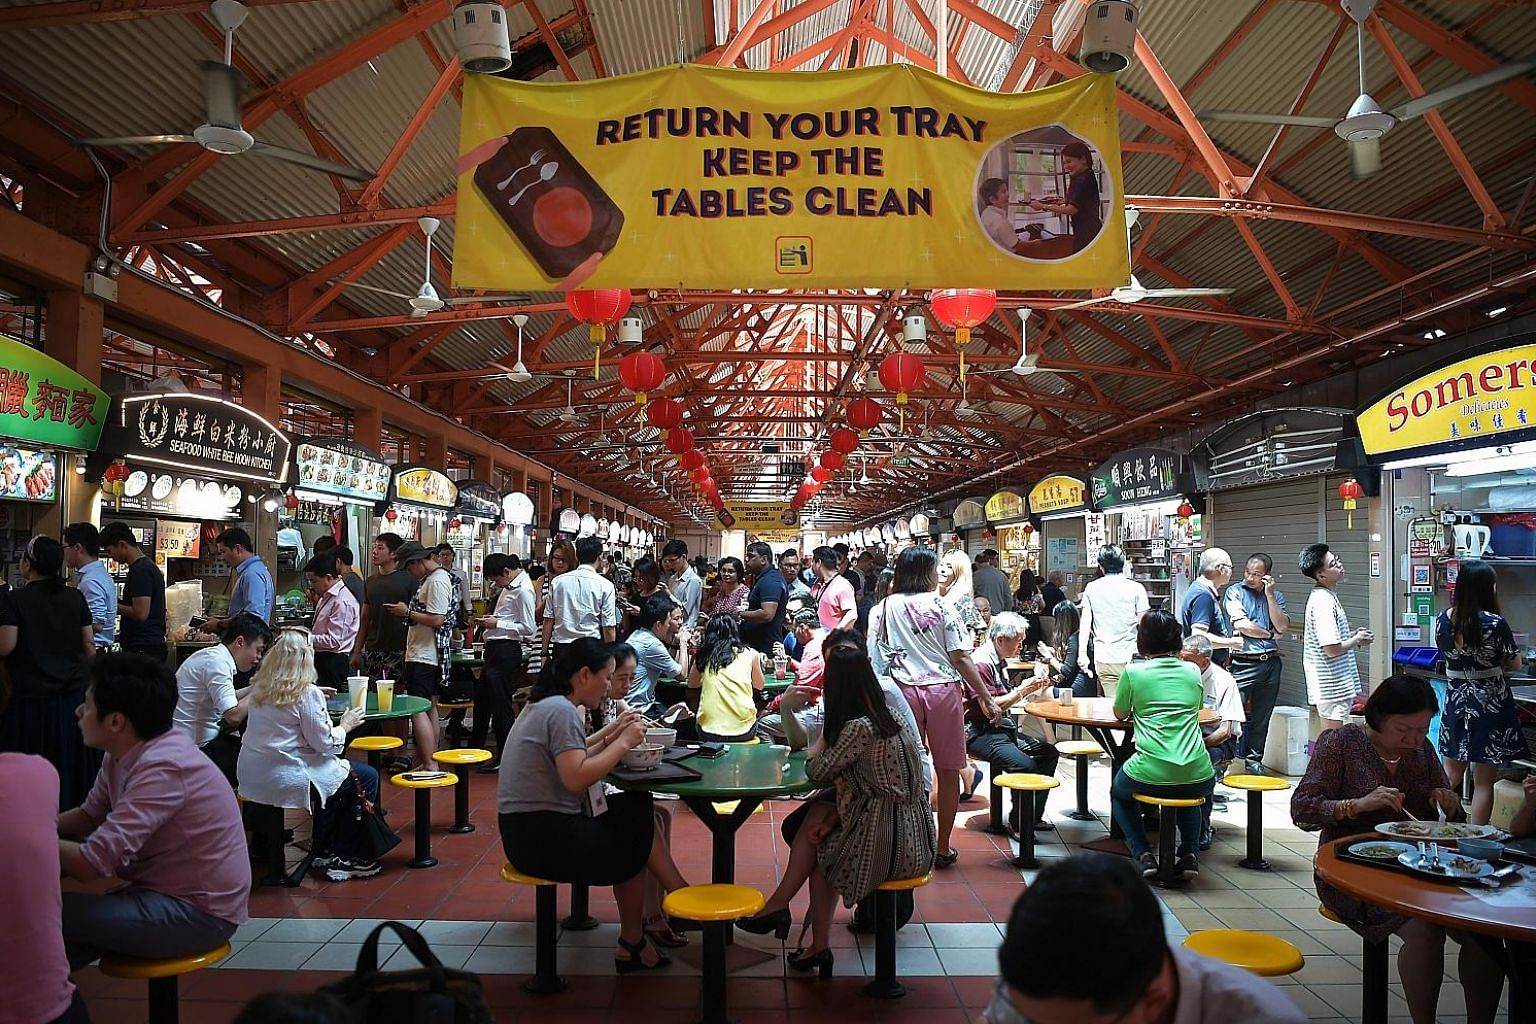 Diners can redeem sets of reusable cutlery (on a first-come, first-served basis) at selected hawker centres such as Maxwell Food Centre (left).